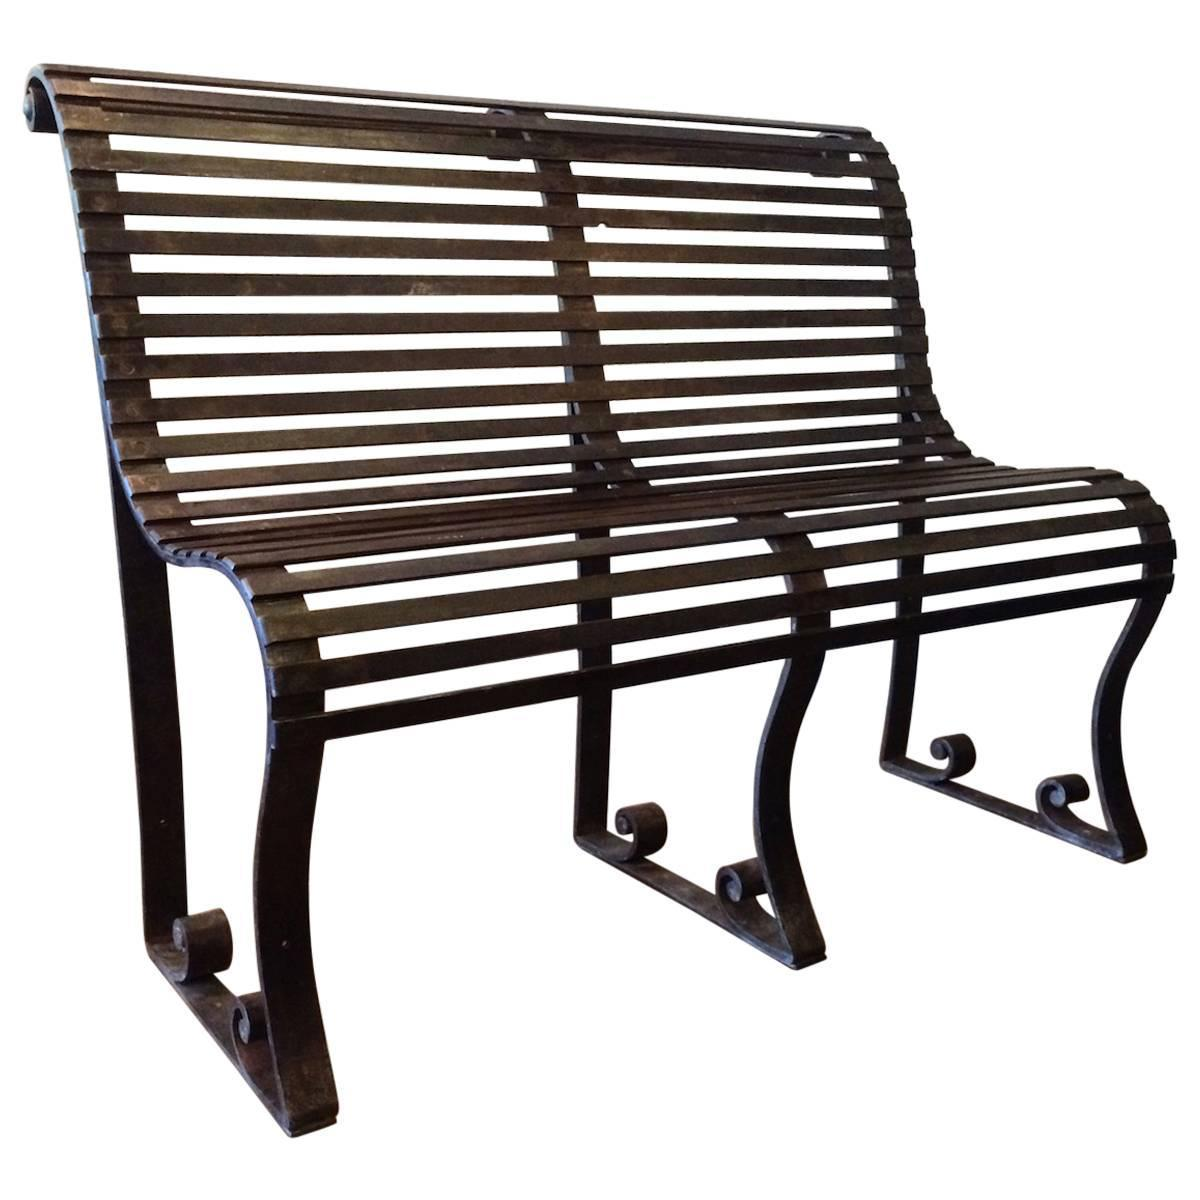 Late 19th Century Victorian Wrought Iron Park Bench For